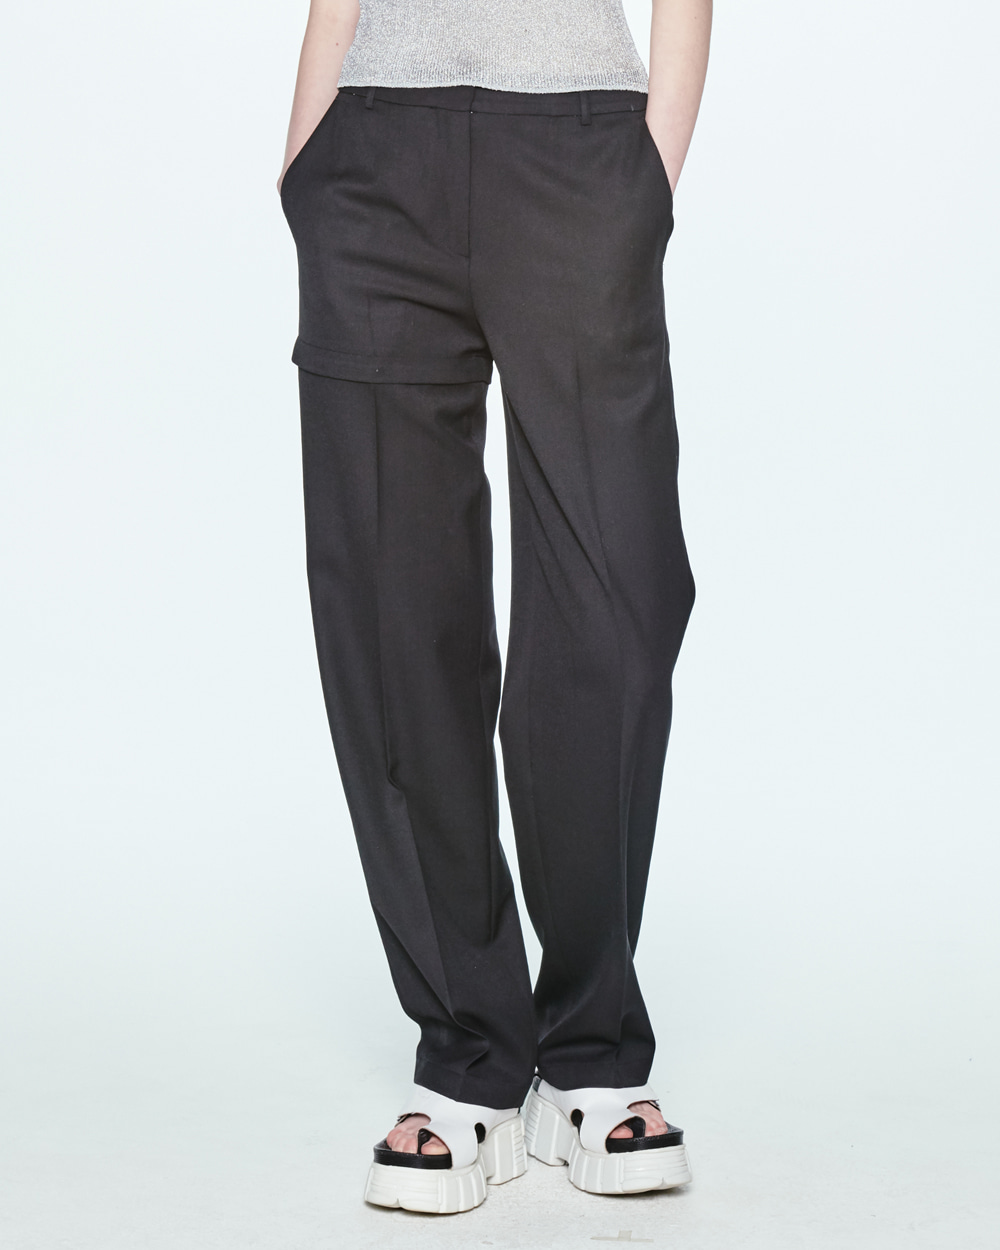 SS20 TRANSFORMER TWO-WAY BLACK PANTS